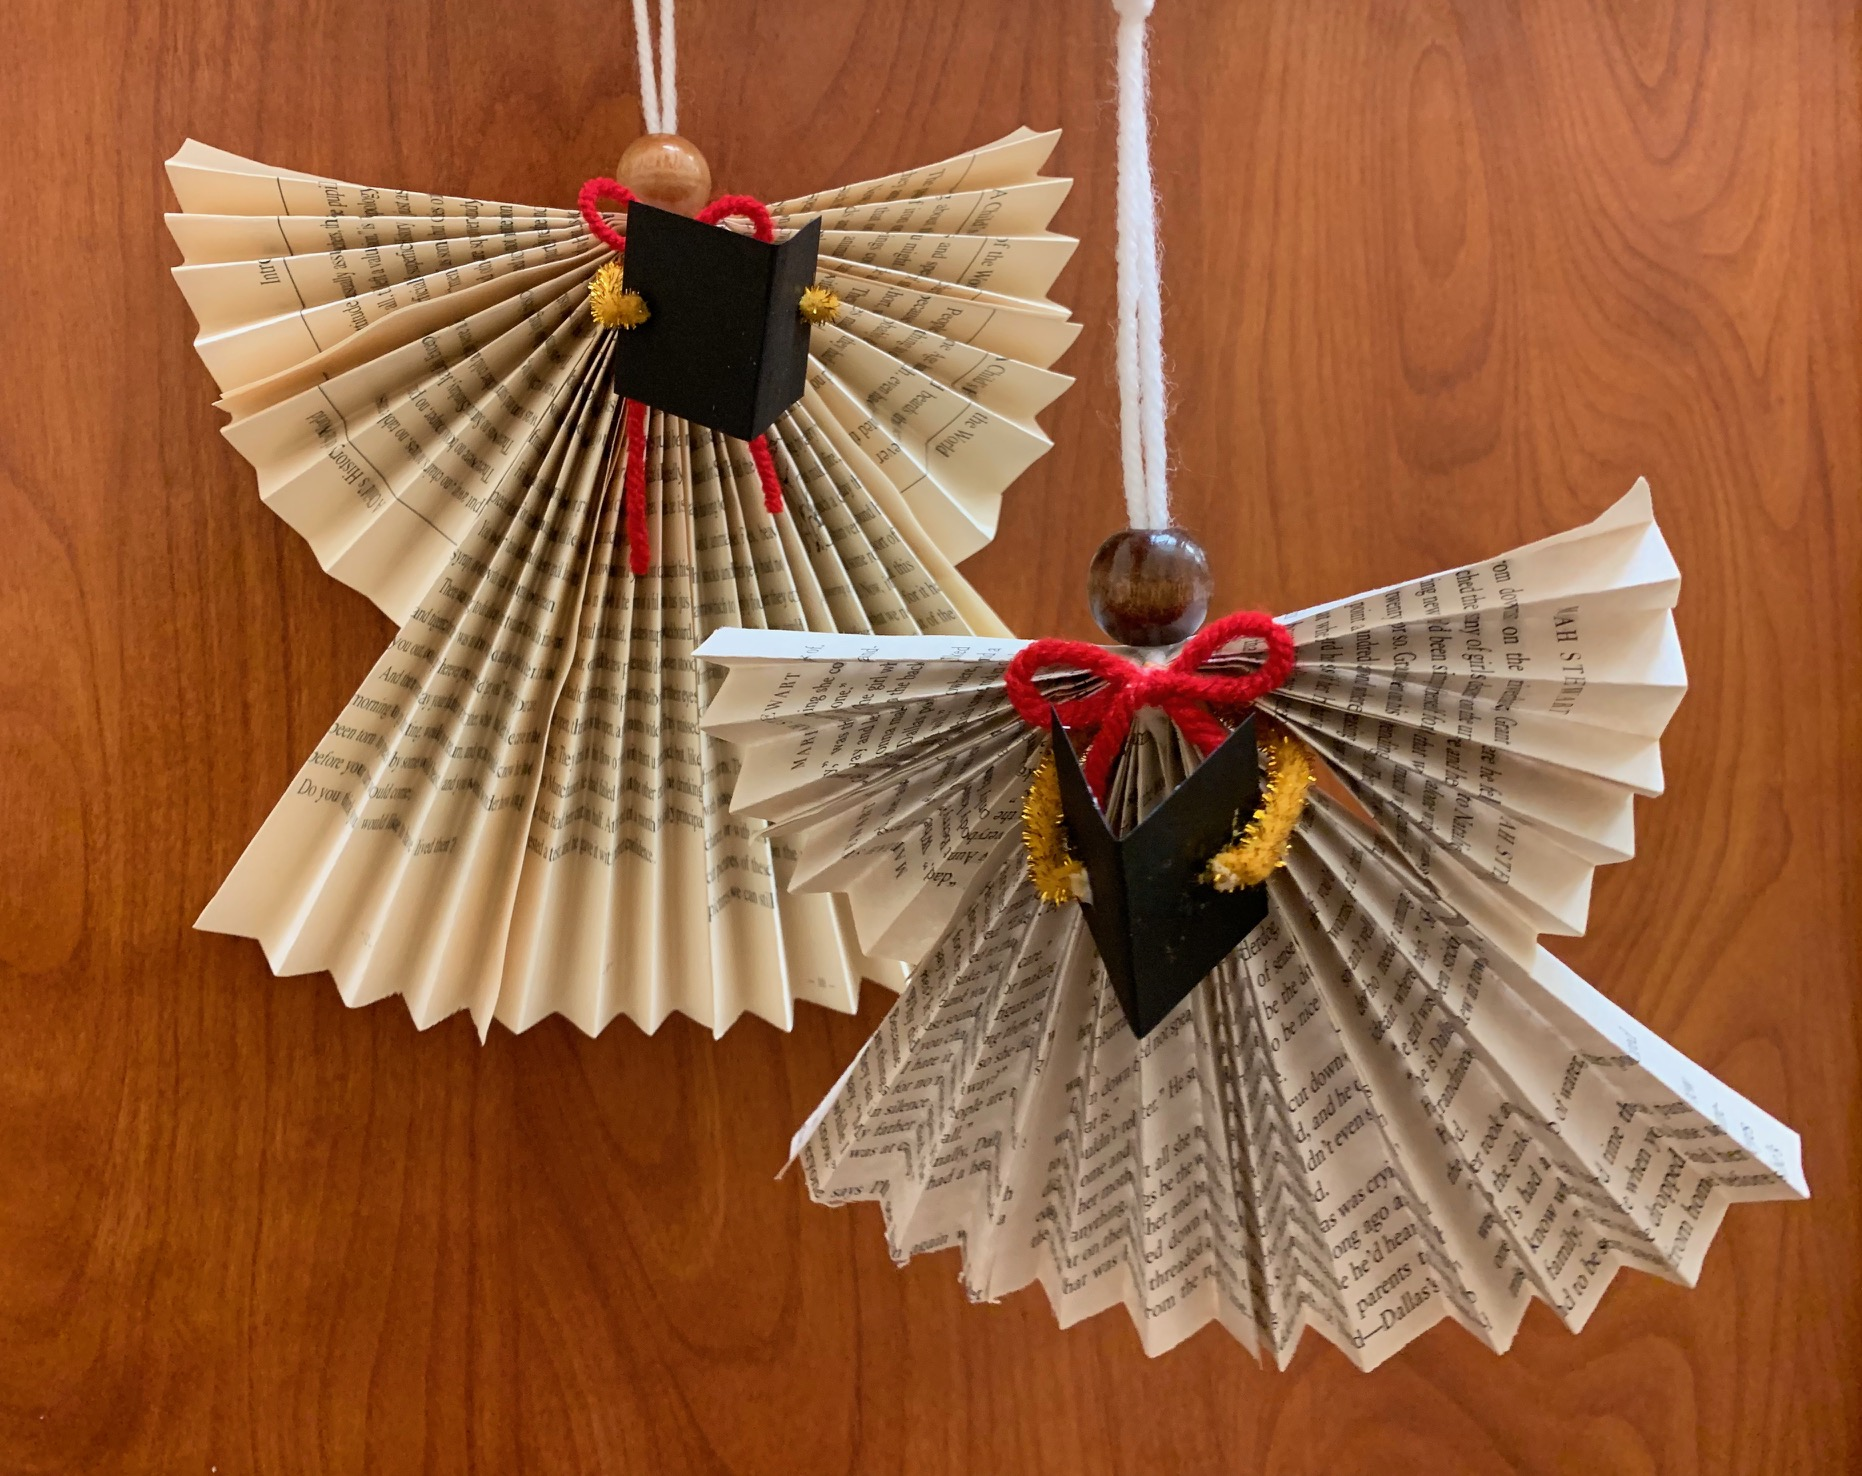 Two Christmas ornaments hang. They are carolers made out of book pages.